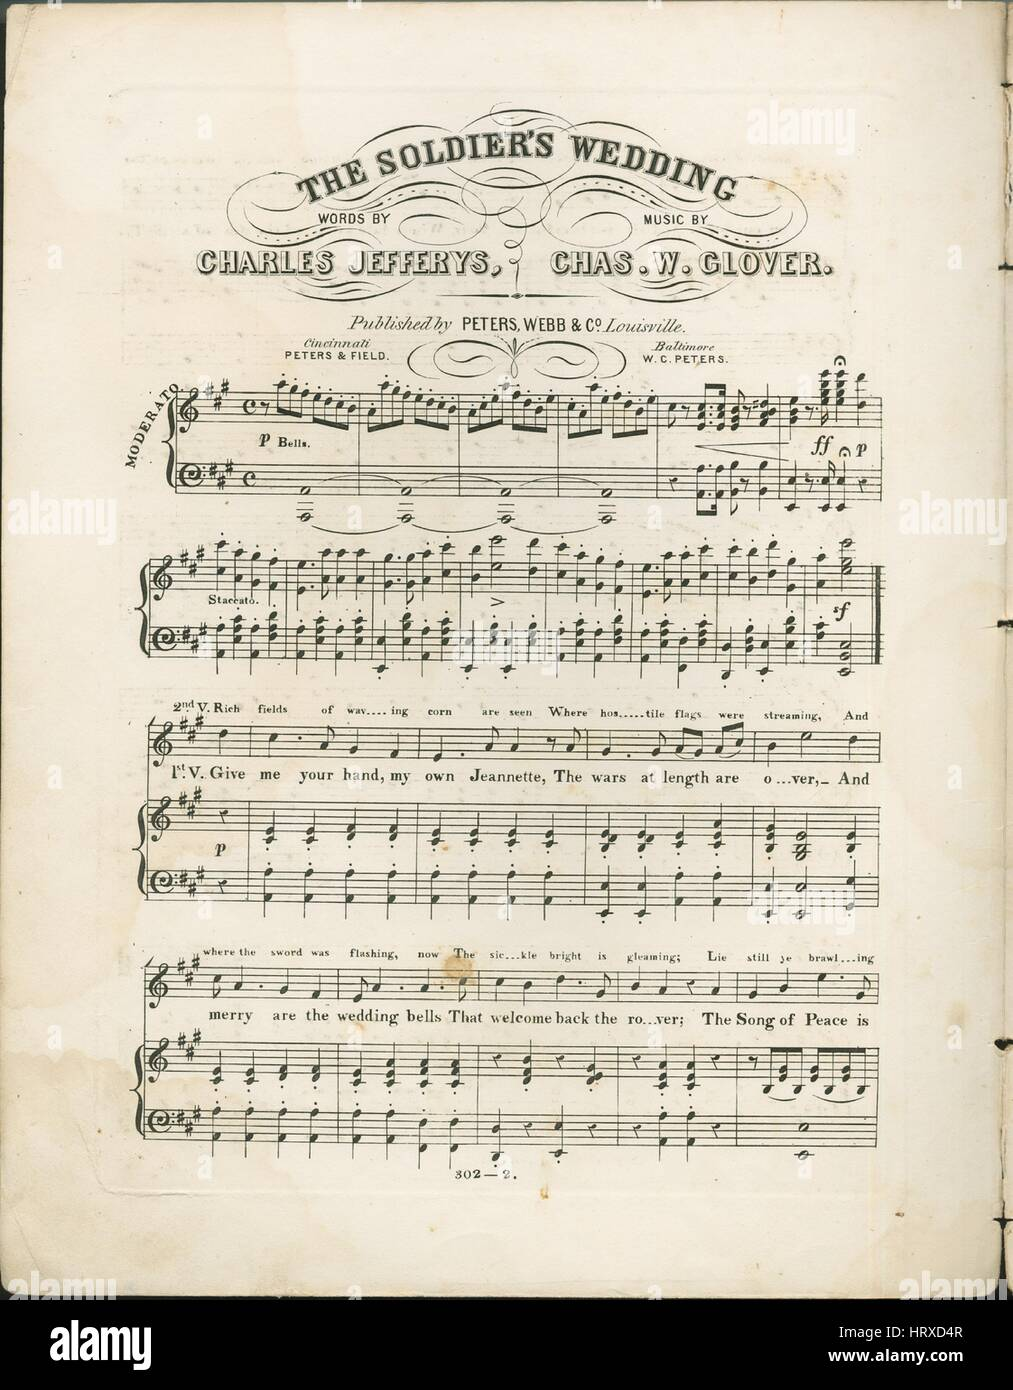 Sheet music cover image of the song 'The Soldier's Wedding